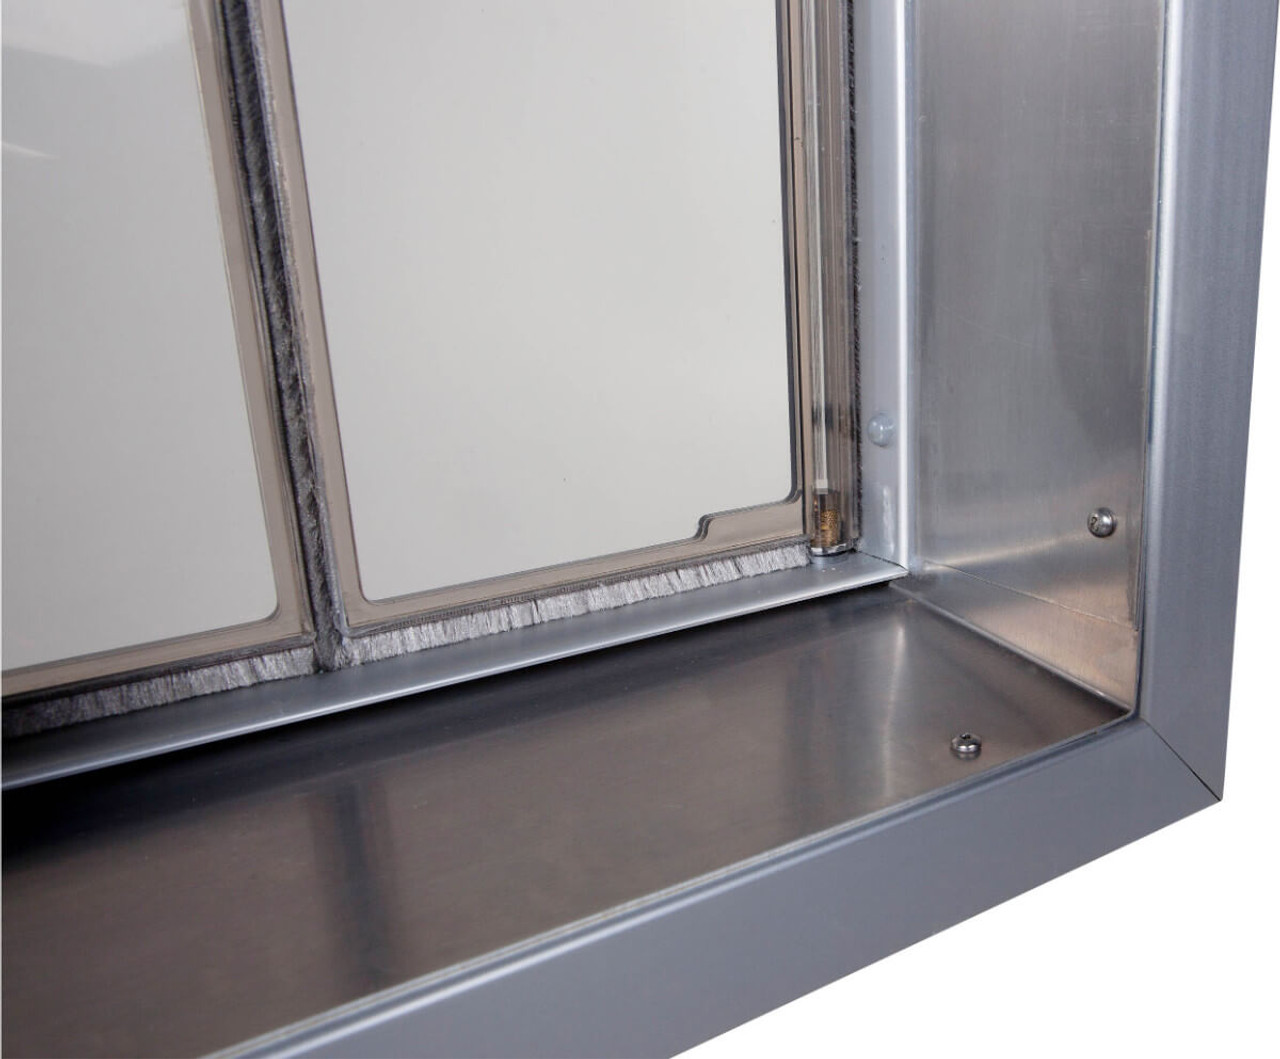 PlexiDor Wall pet doors have an aluminum tunnel that is sloped to let rain water run right back out